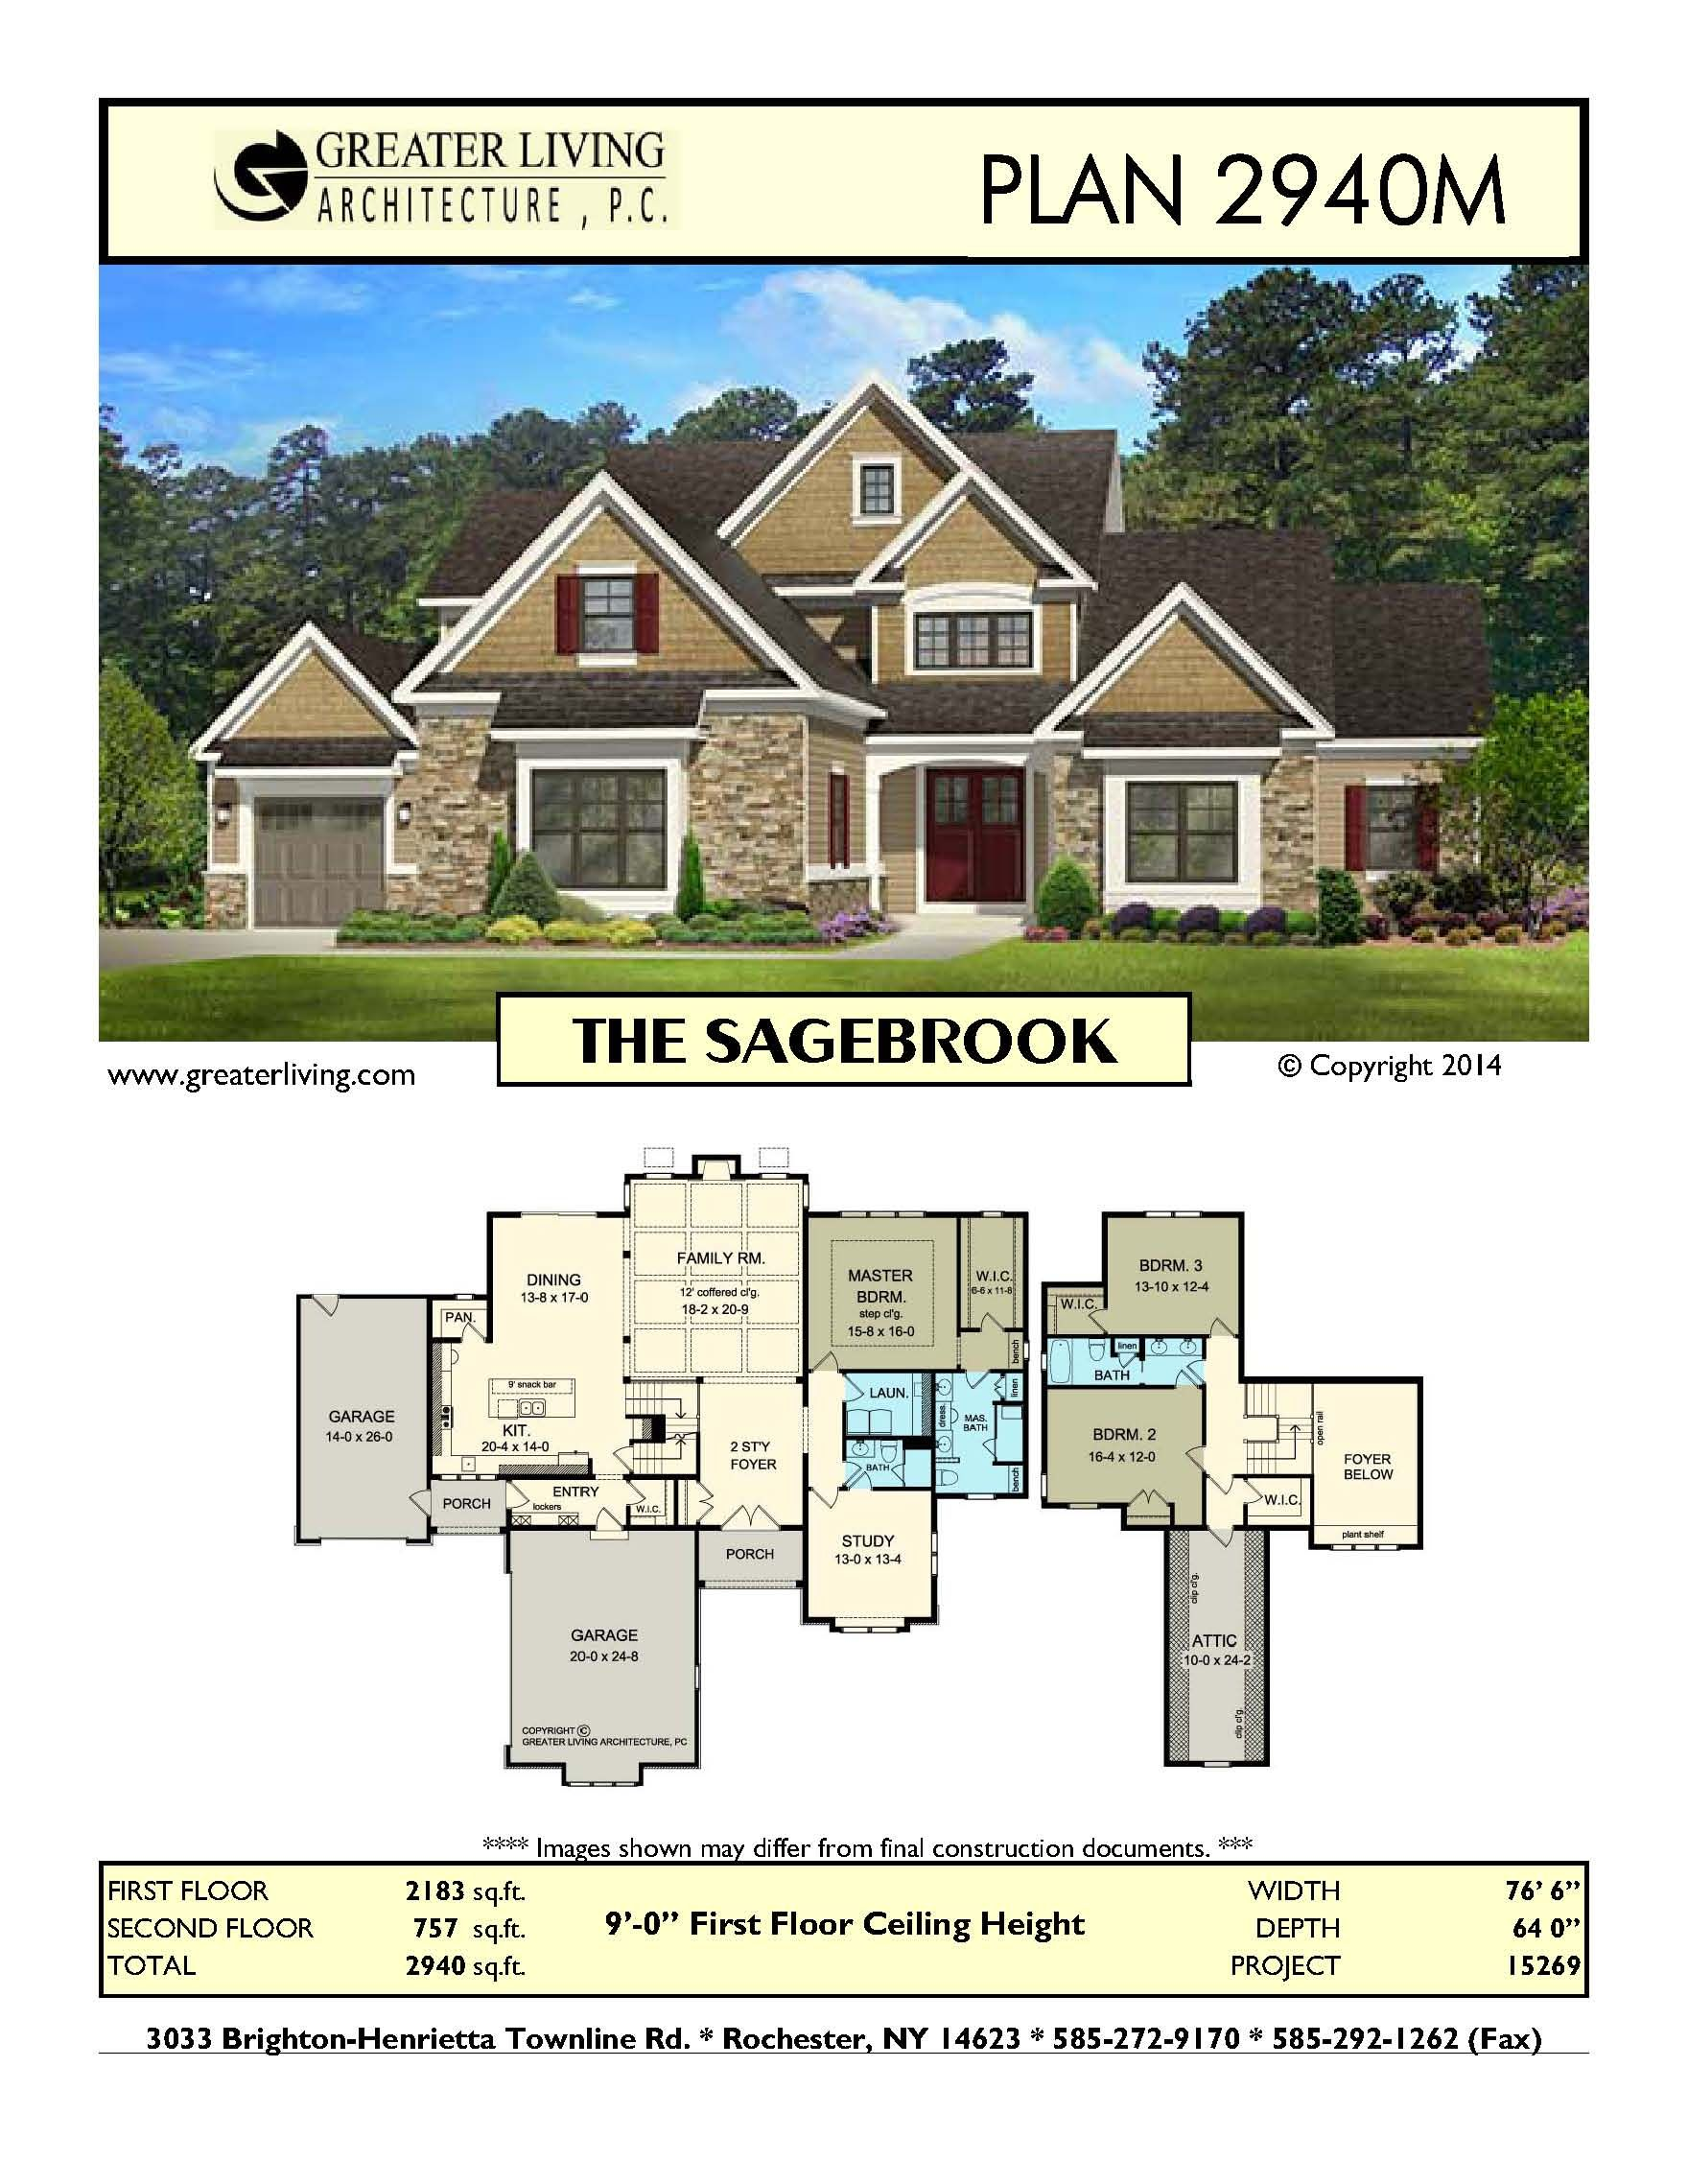 plan 2940m the sagebrook layout pinterest story house plan 2940m the sagebrook two story housesresidential architecturefloor